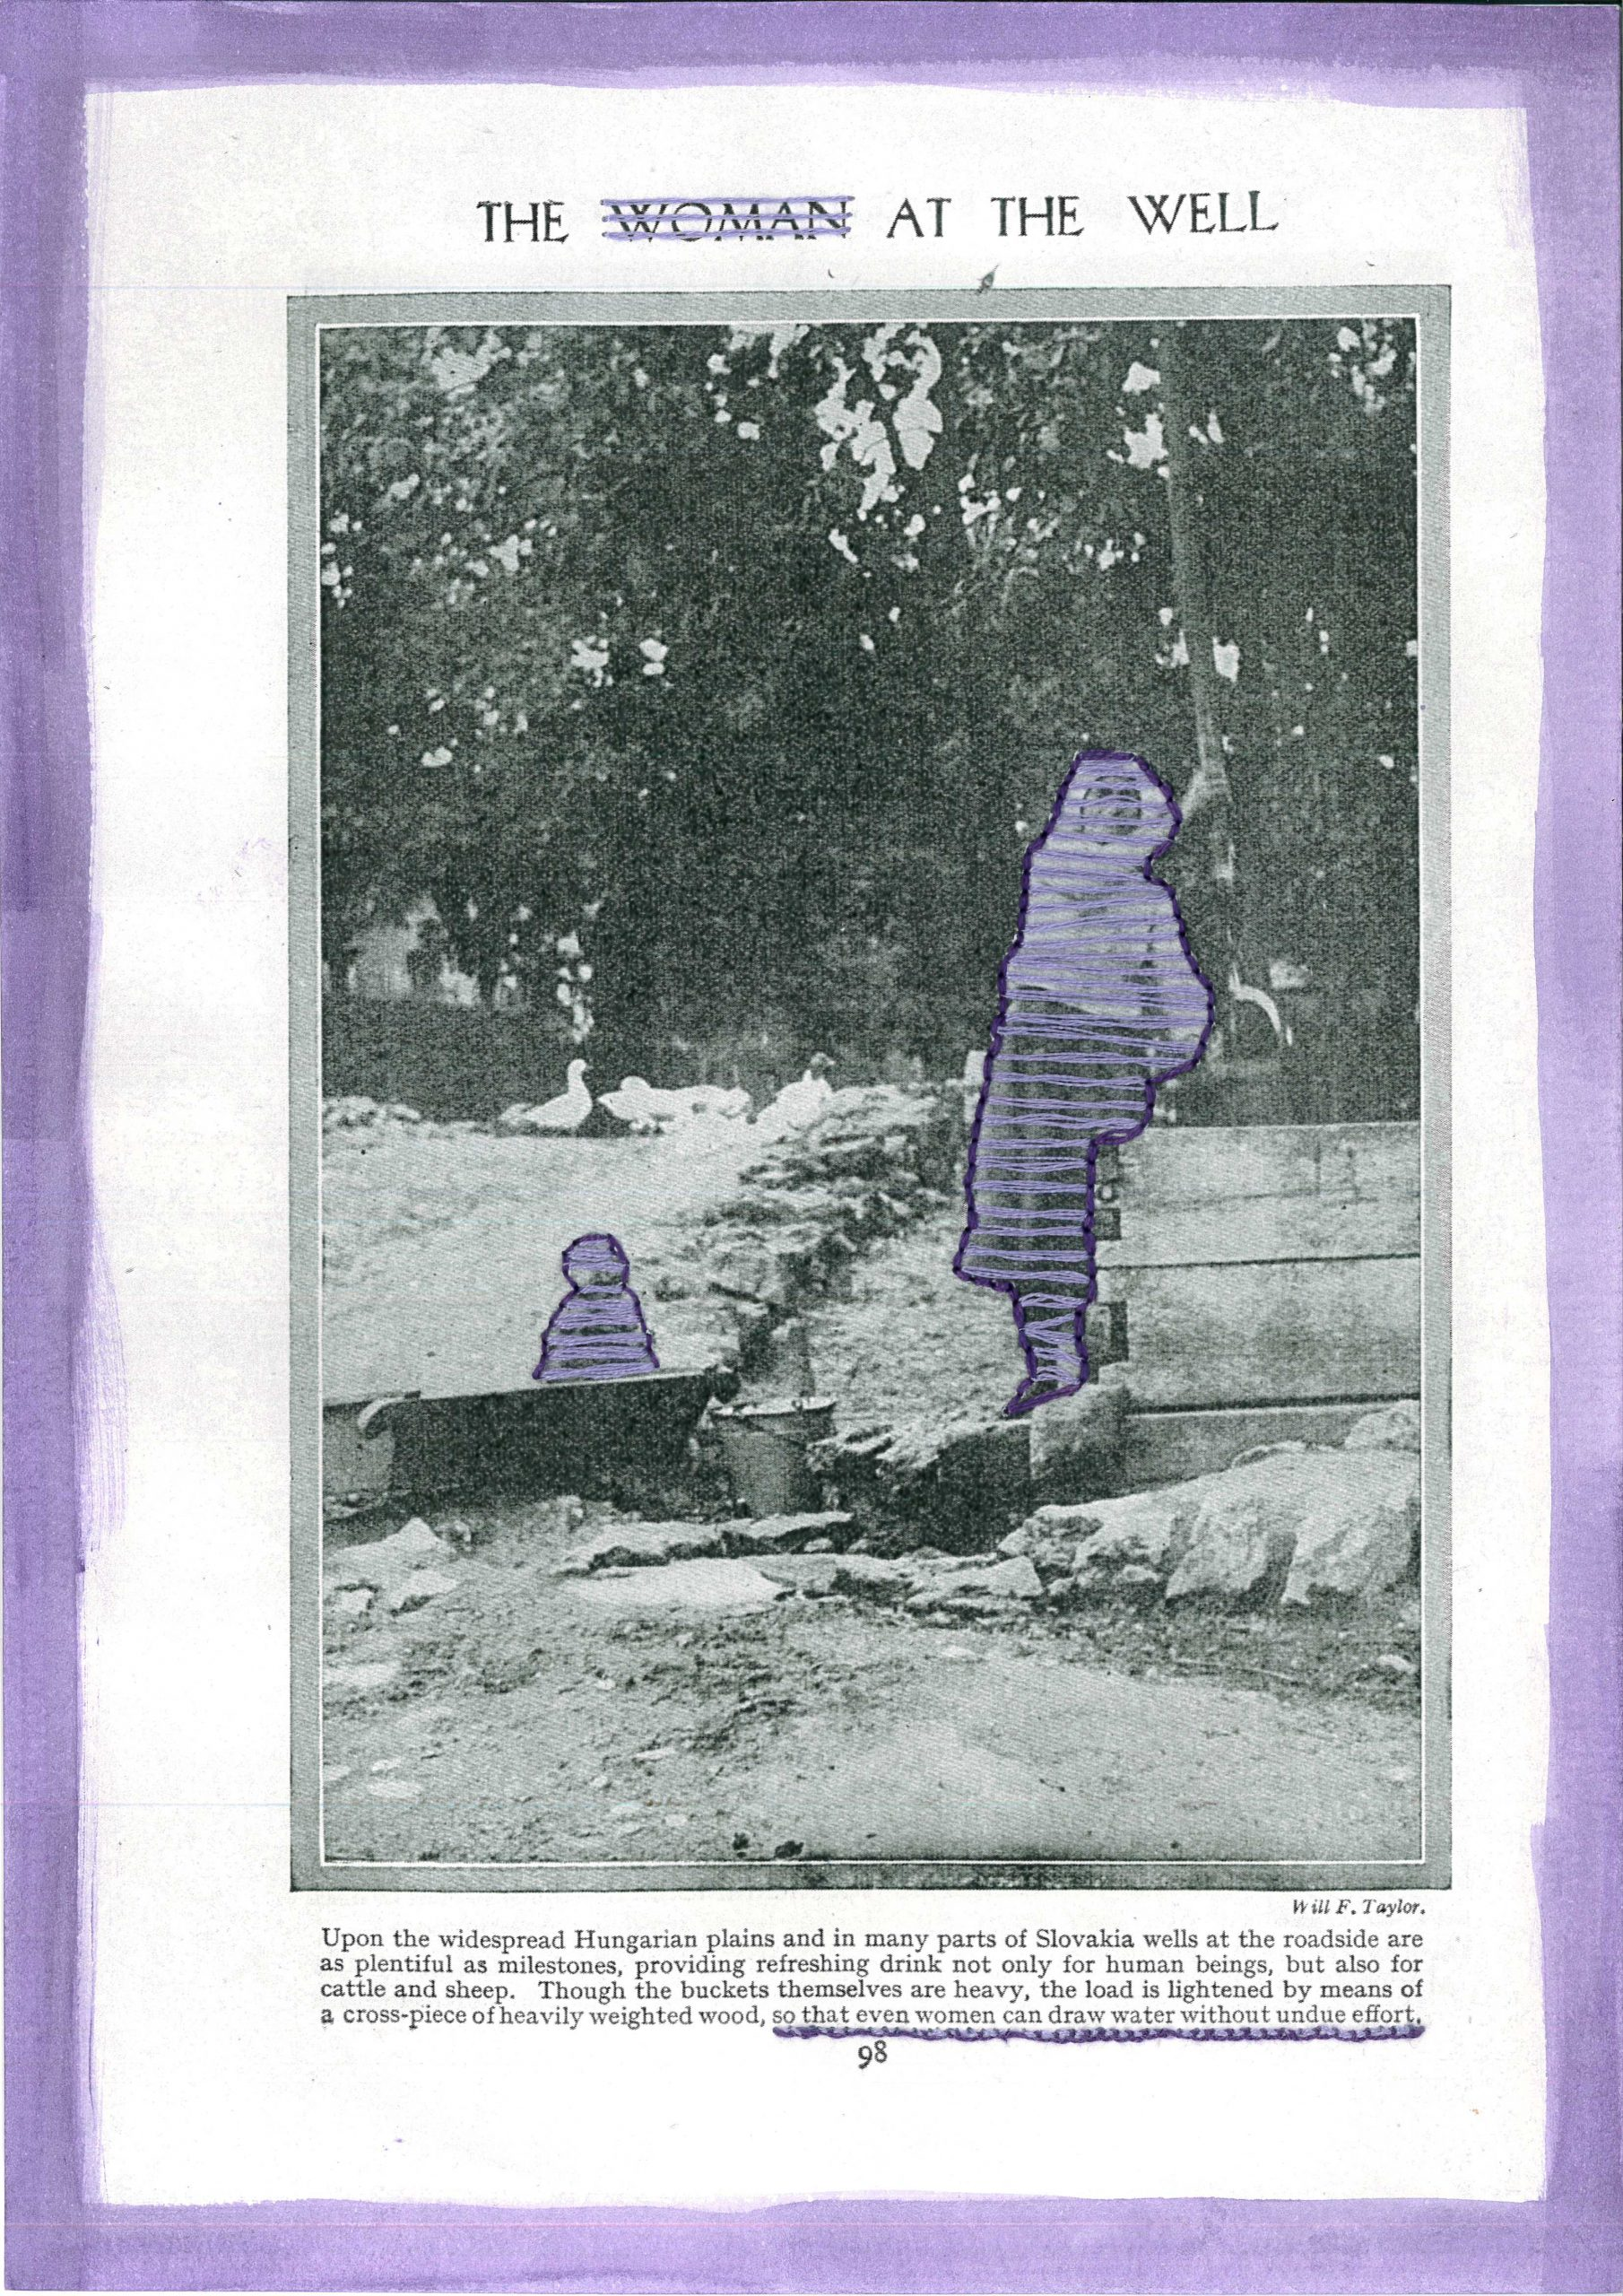 (1199) IMMA DUÑACH GIRONELLA - The woman at the well, 2021 Image